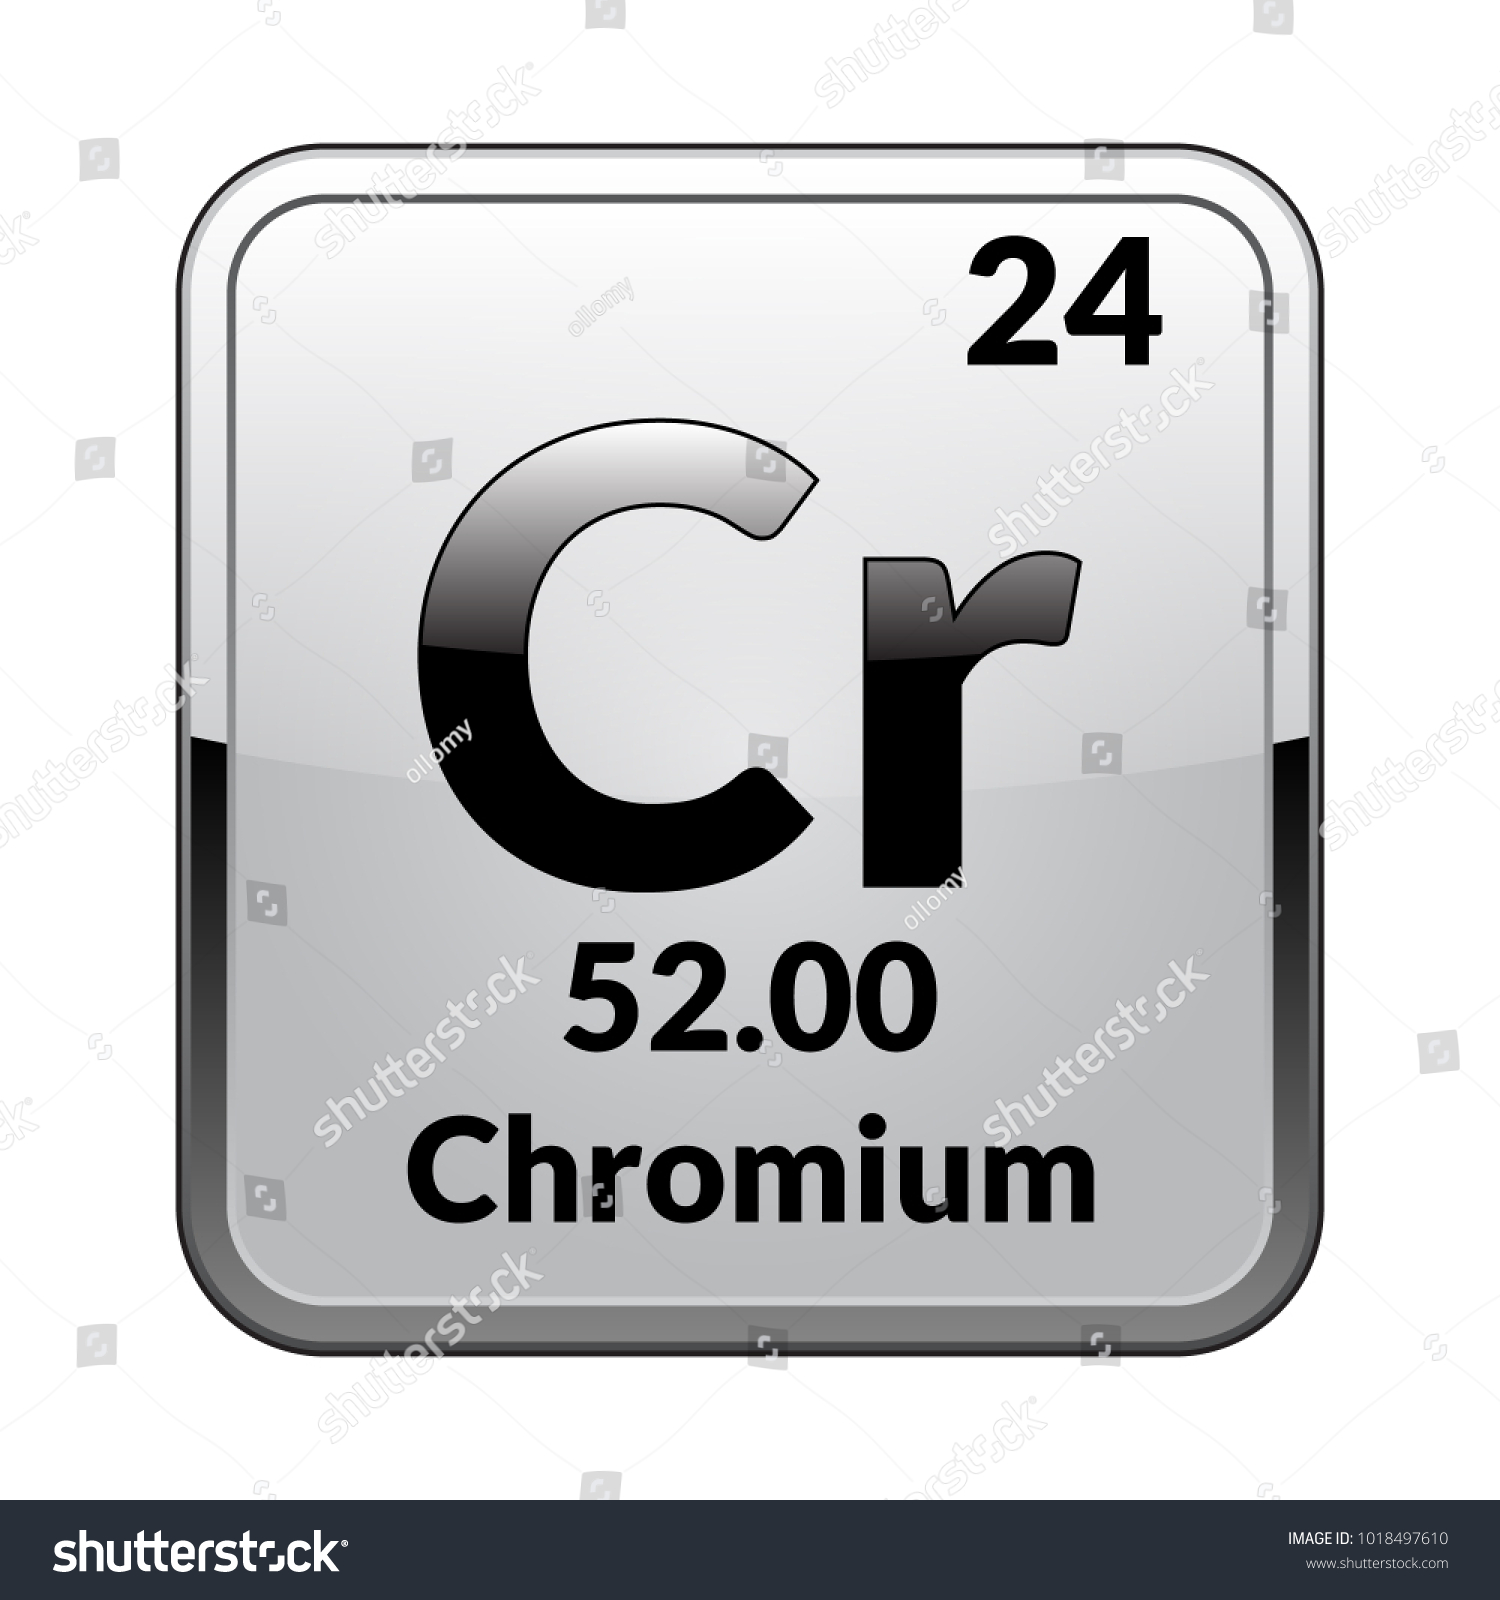 Symbol in periodic table image collections symbol and sign ideas silver symbol on periodic table gallery symbol and sign ideas chromium symbolchemical element periodic table on urtaz Gallery